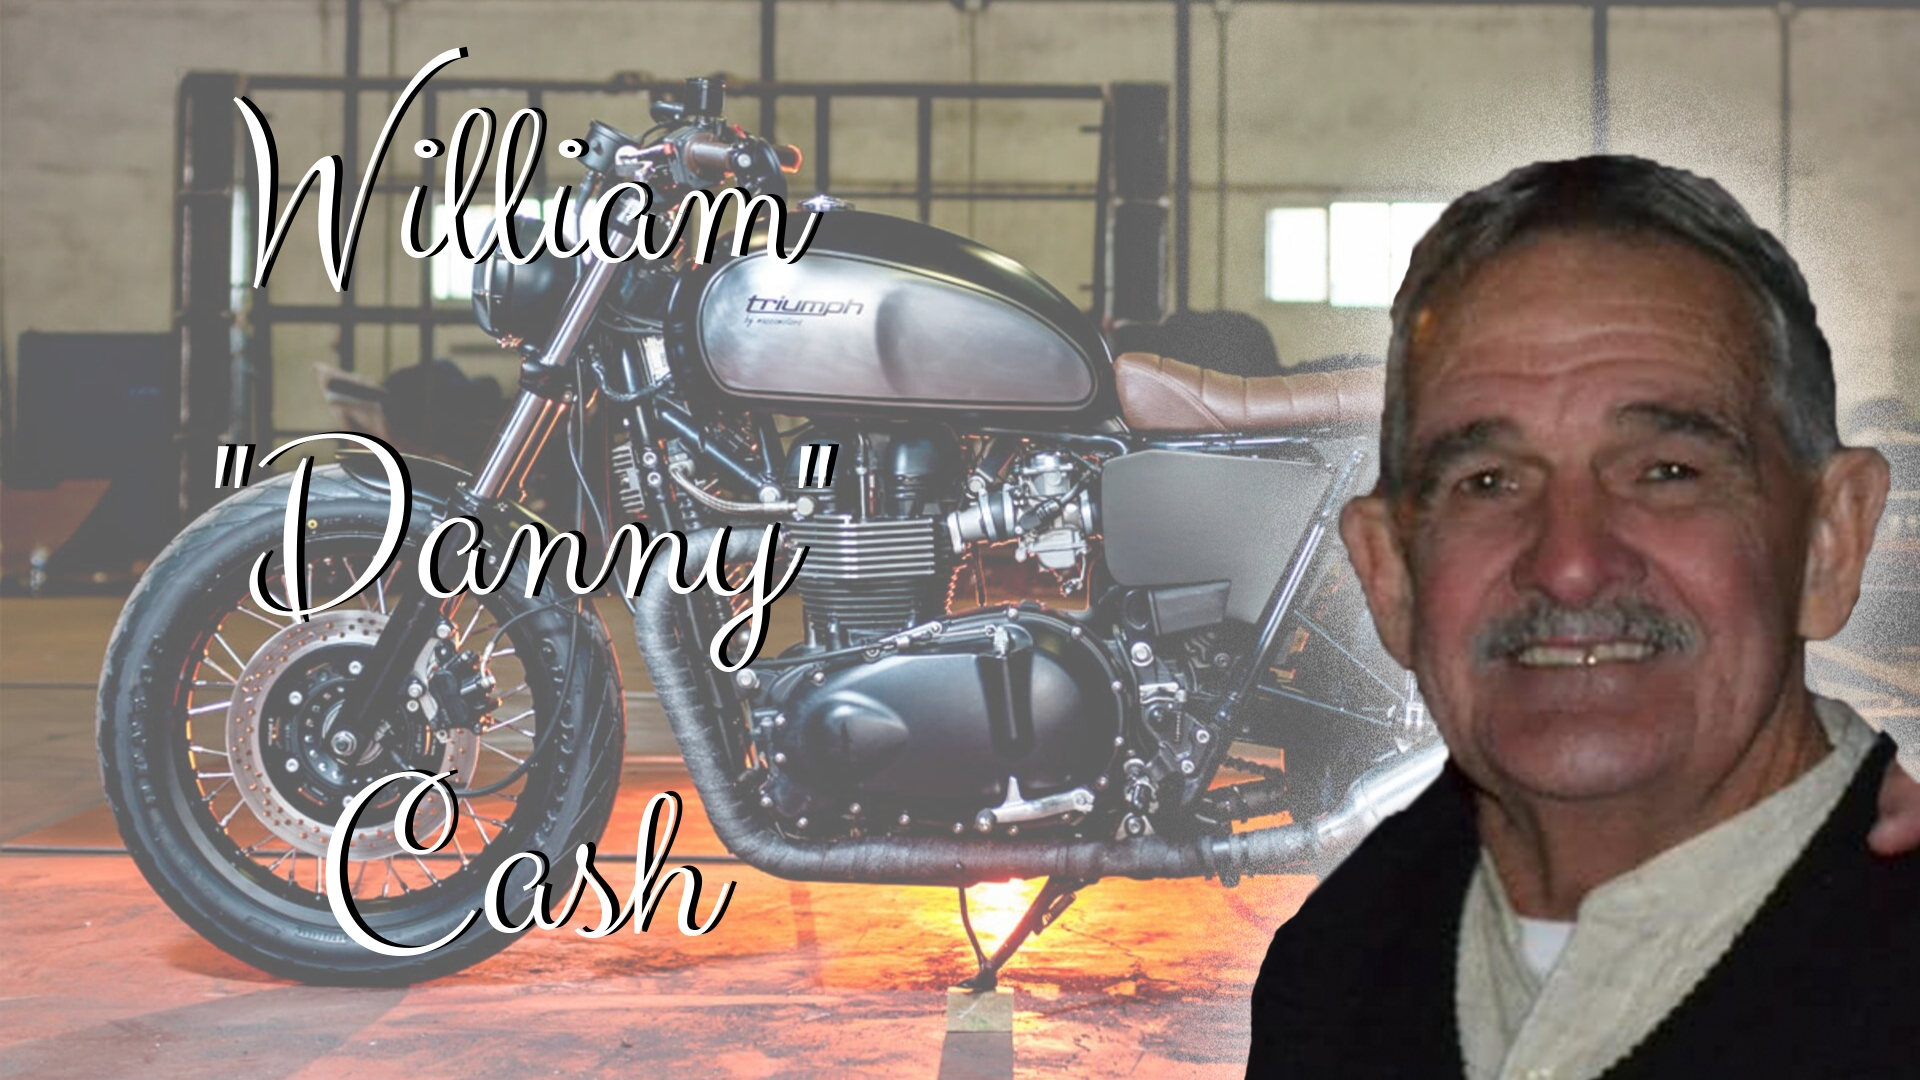 William Cash (Danny)